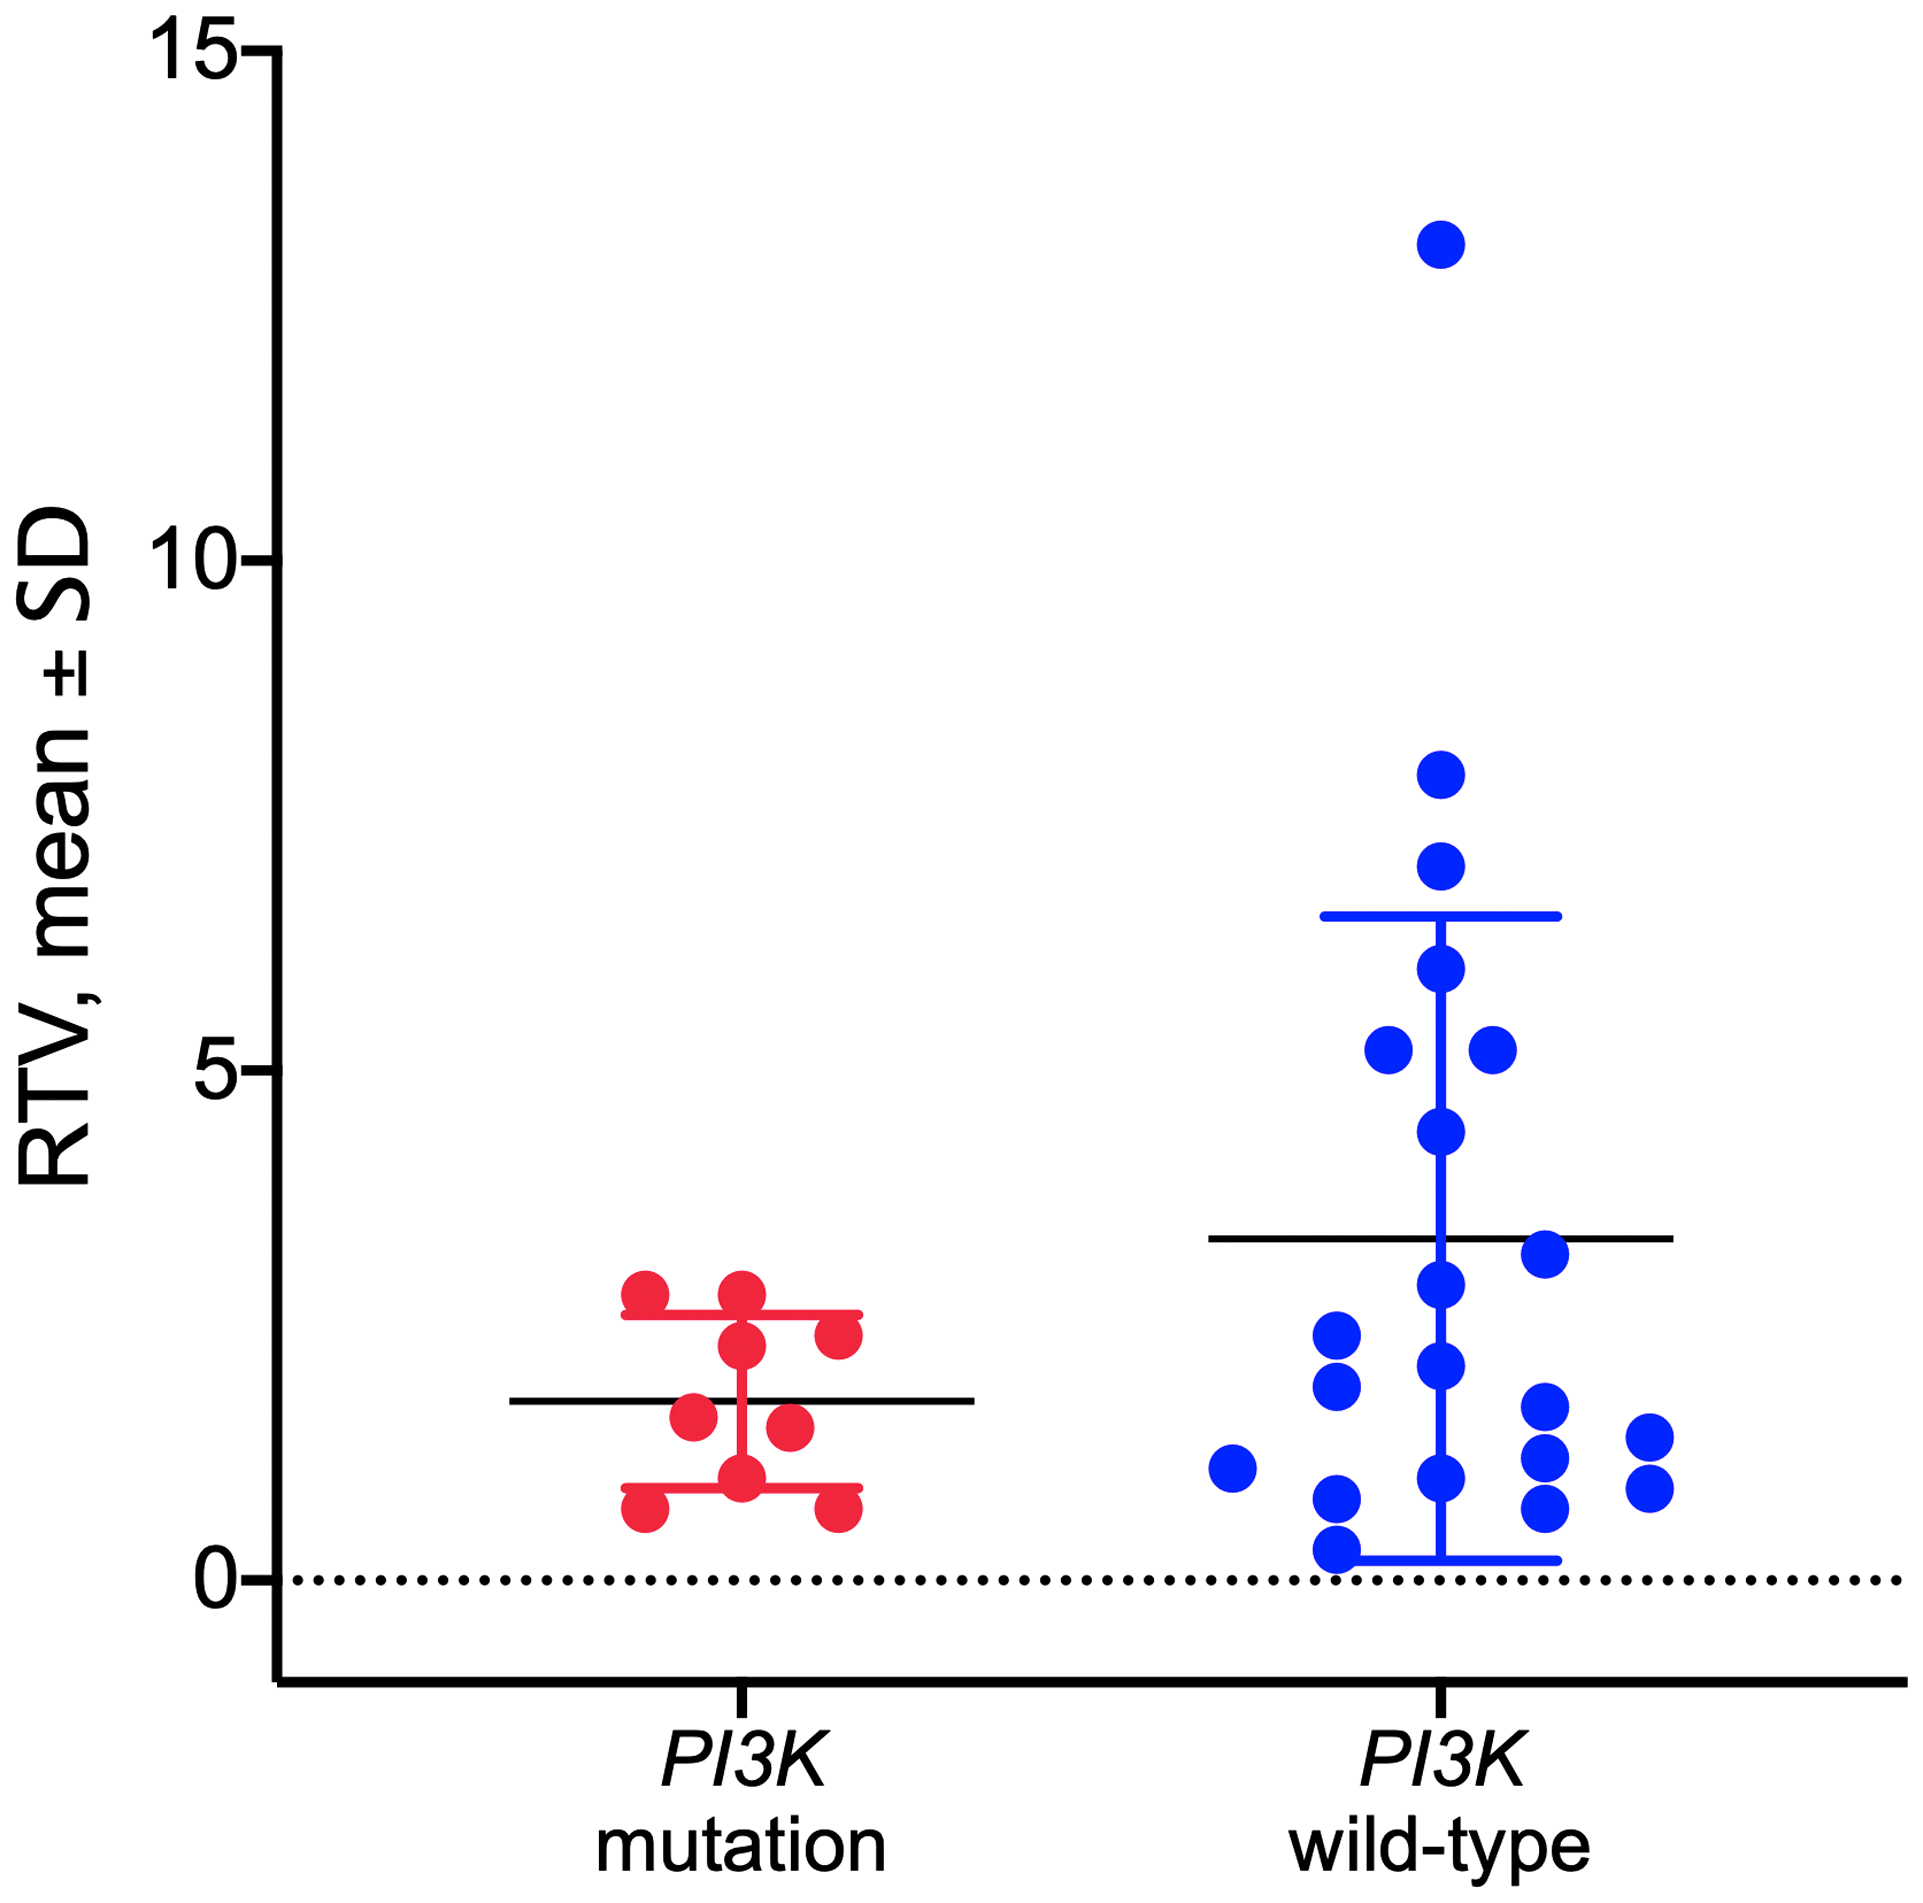 Response to copanlisib expressed as relative tumor volume (RTV) in HNSCC PDX models with mutated or wild-type PI3K gene.